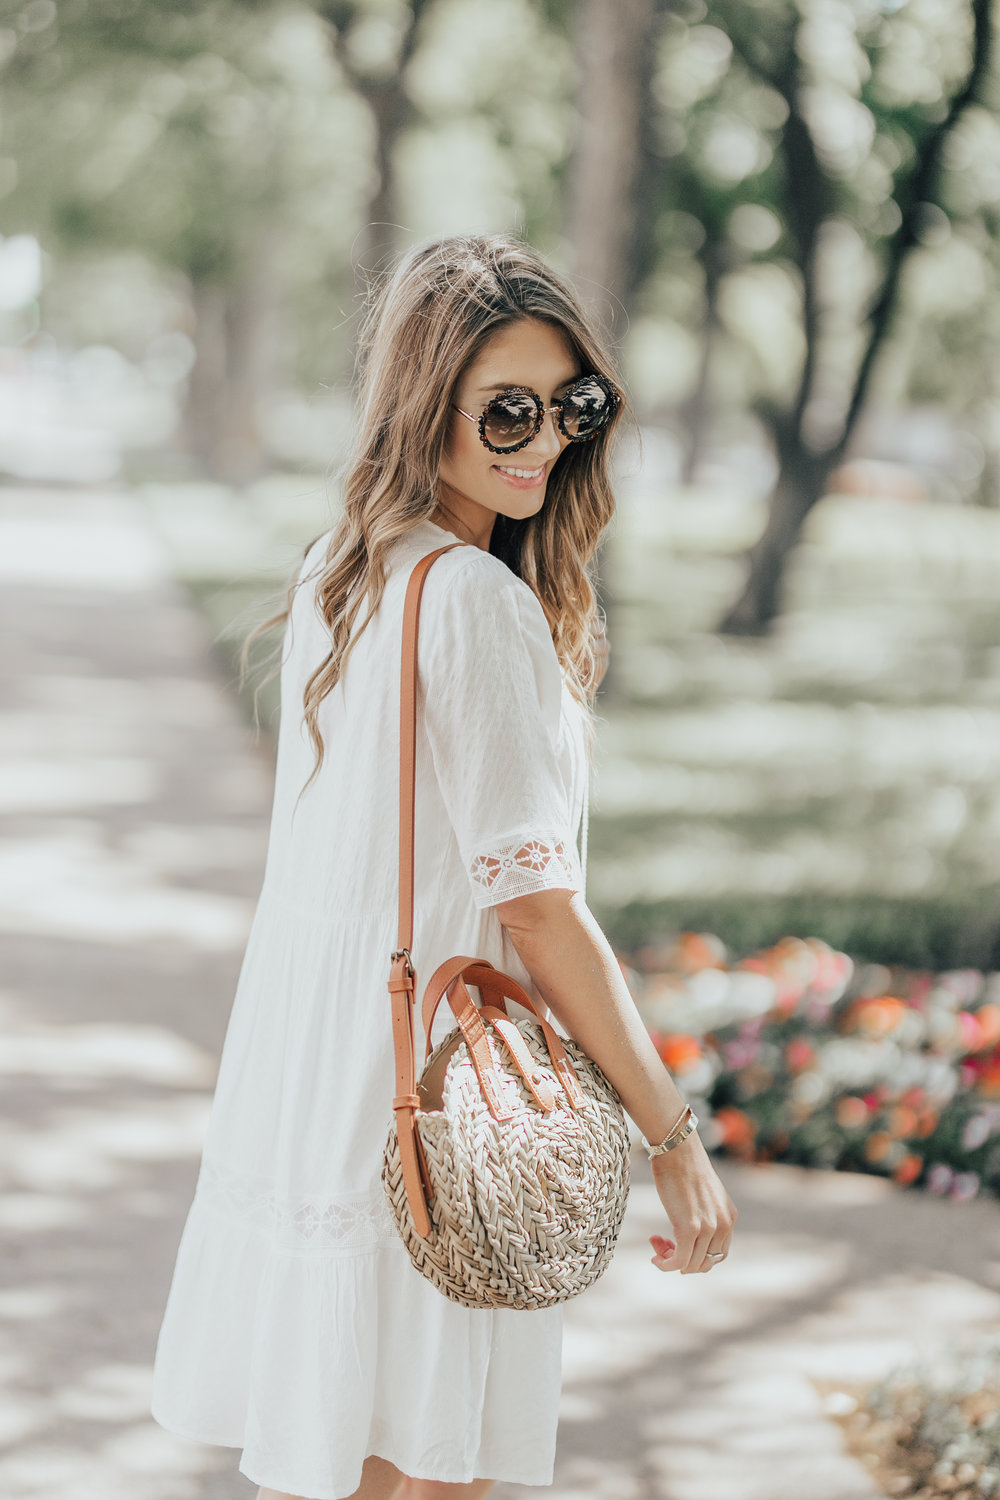 White Dress + Straw Bag